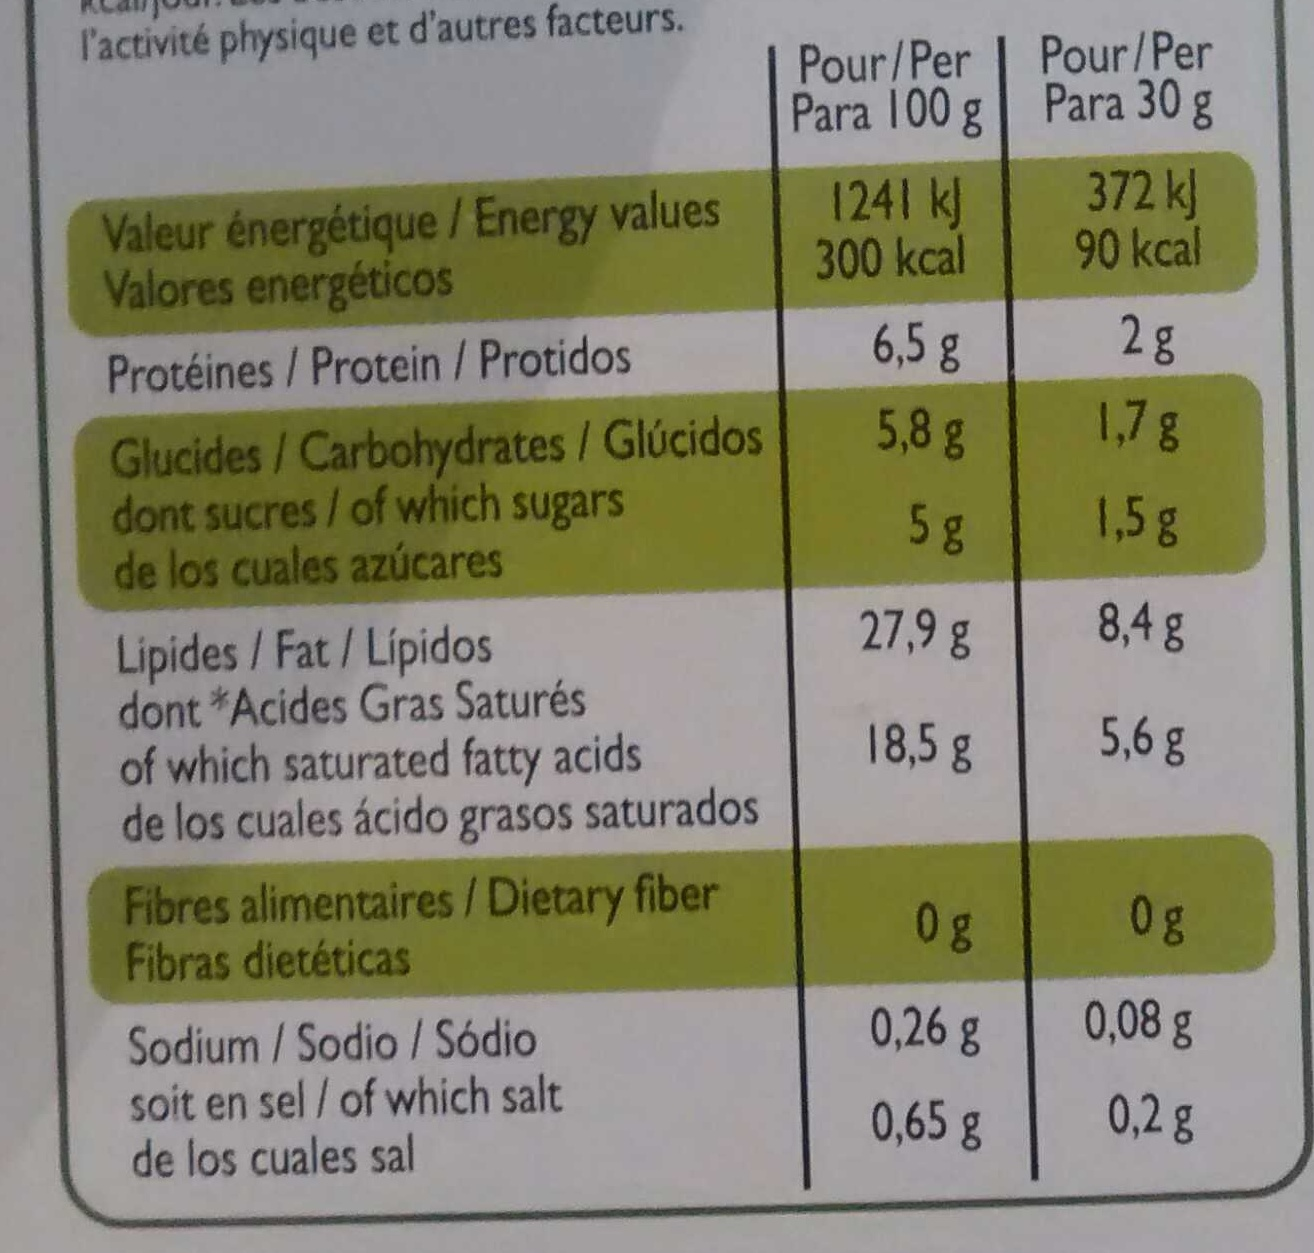 Fromage à tartiner - Raisin, figue et noix (27,9 % MG) - Informations nutritionnelles - fr